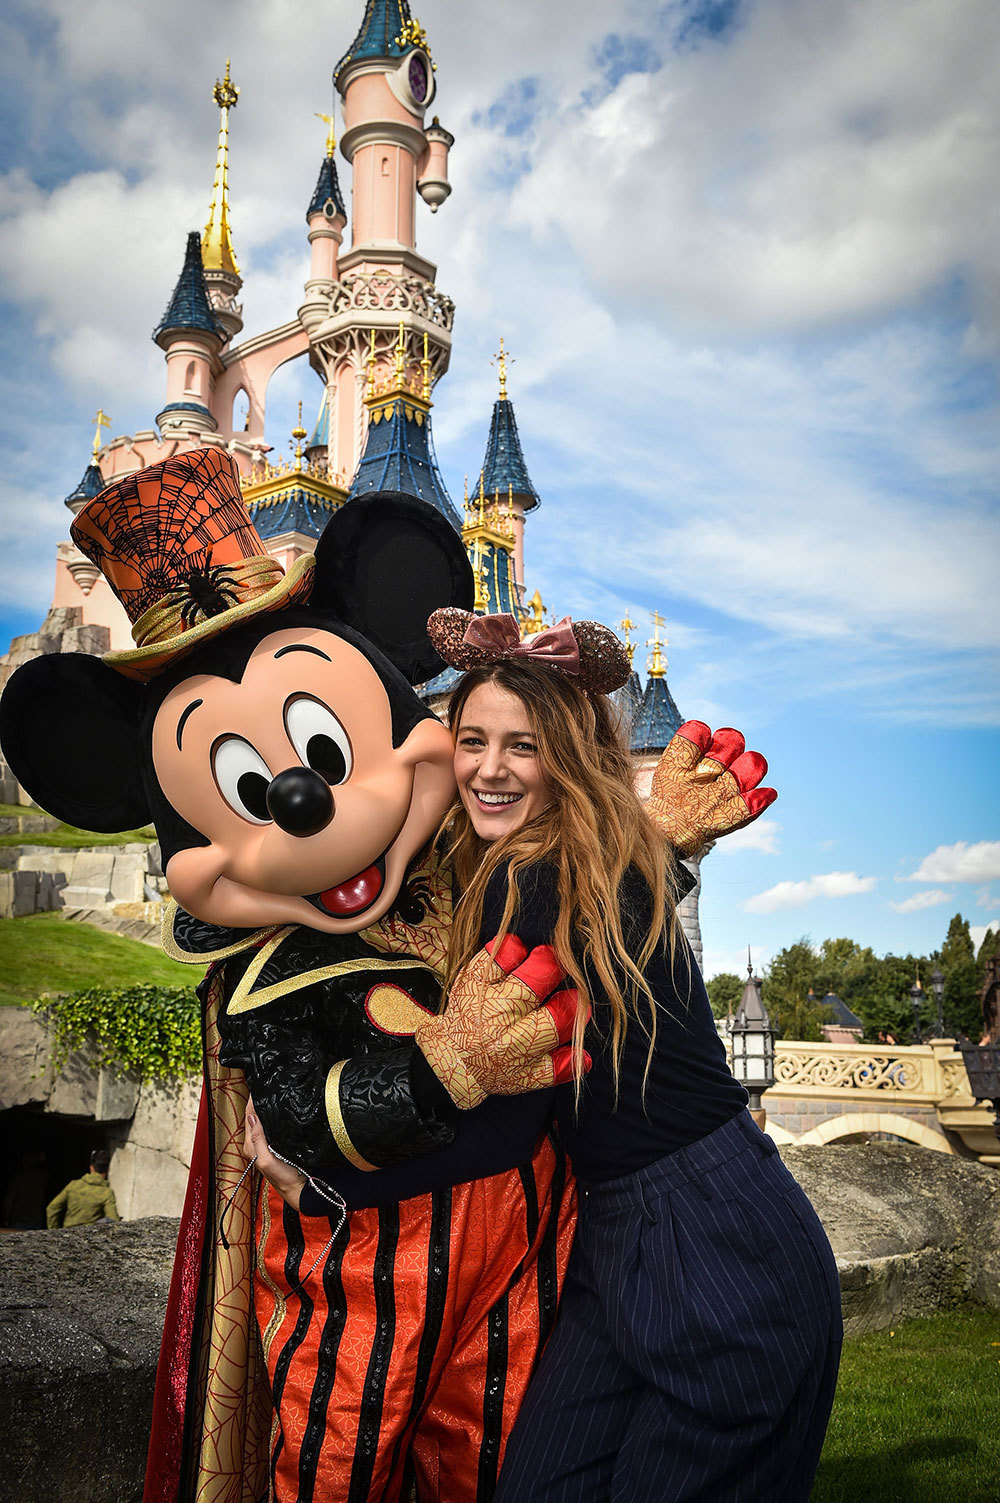 Blake Lively hugging Mickey Mouse, posing for the camera